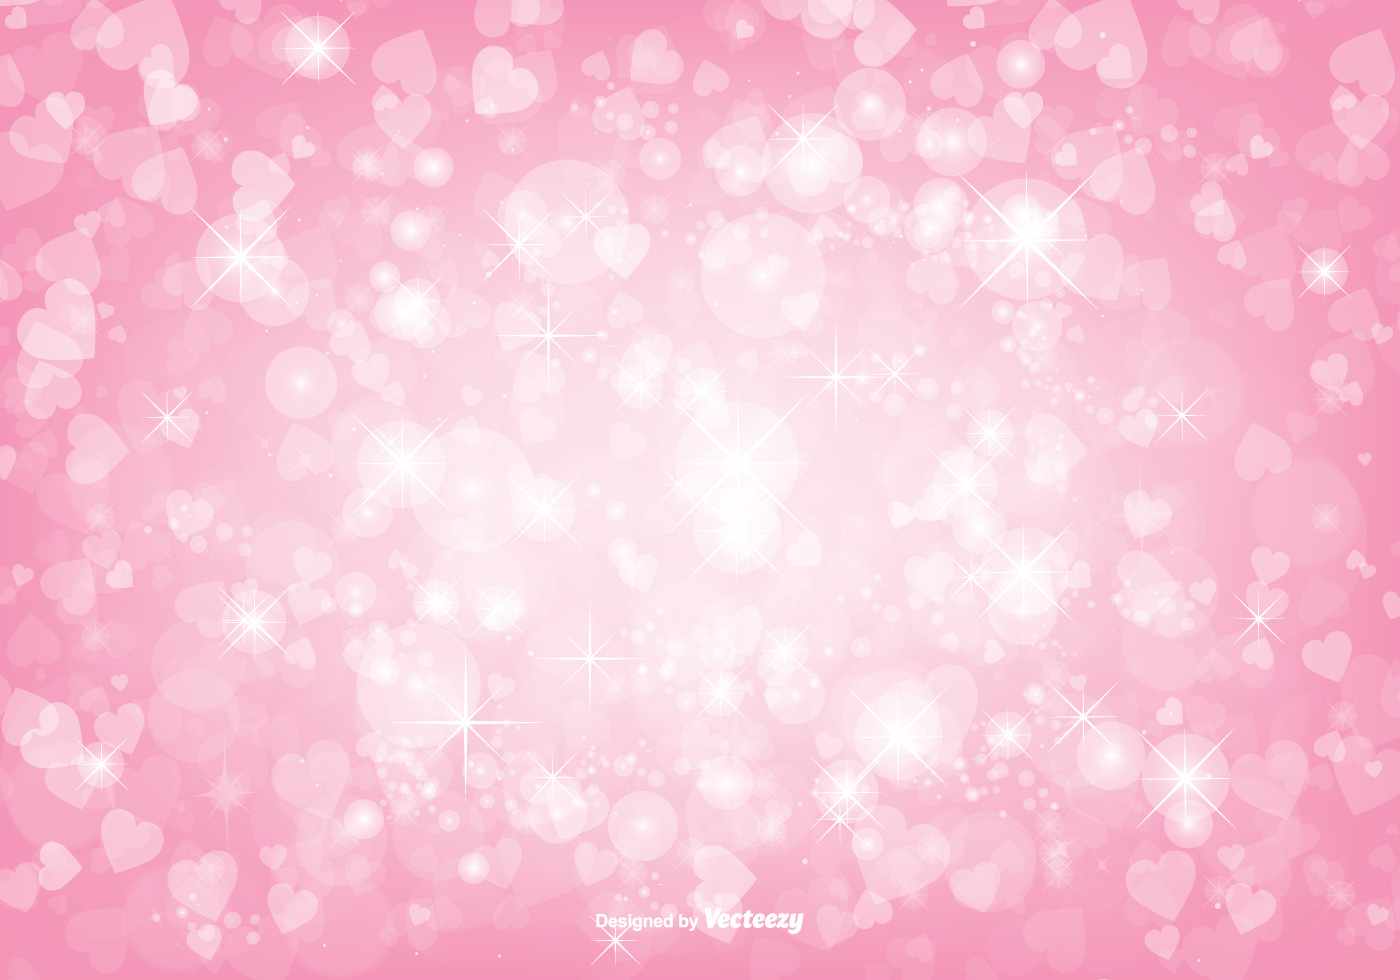 1400x980 - Background Pink 16